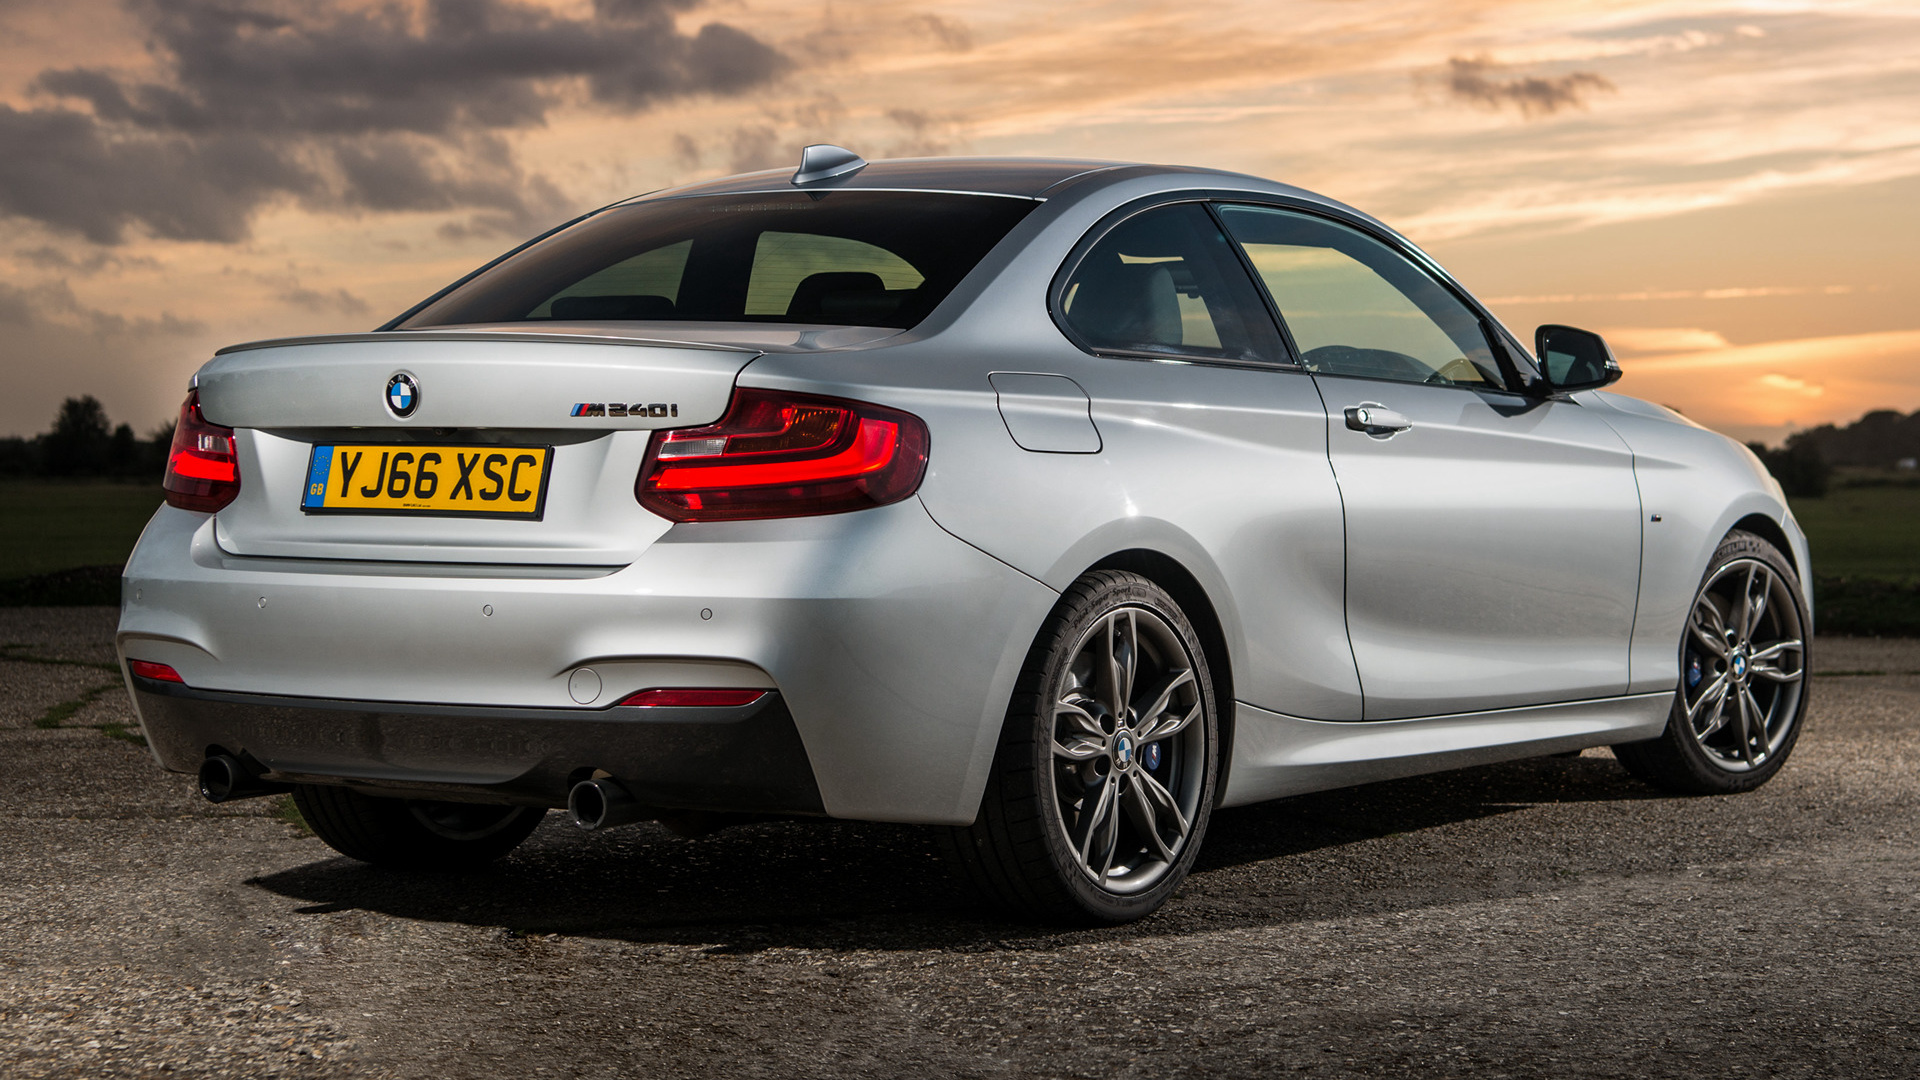 Genesis Coupe 2016 >> 2016 BMW M240i Coupe (UK) - Wallpapers and HD Images | Car ...